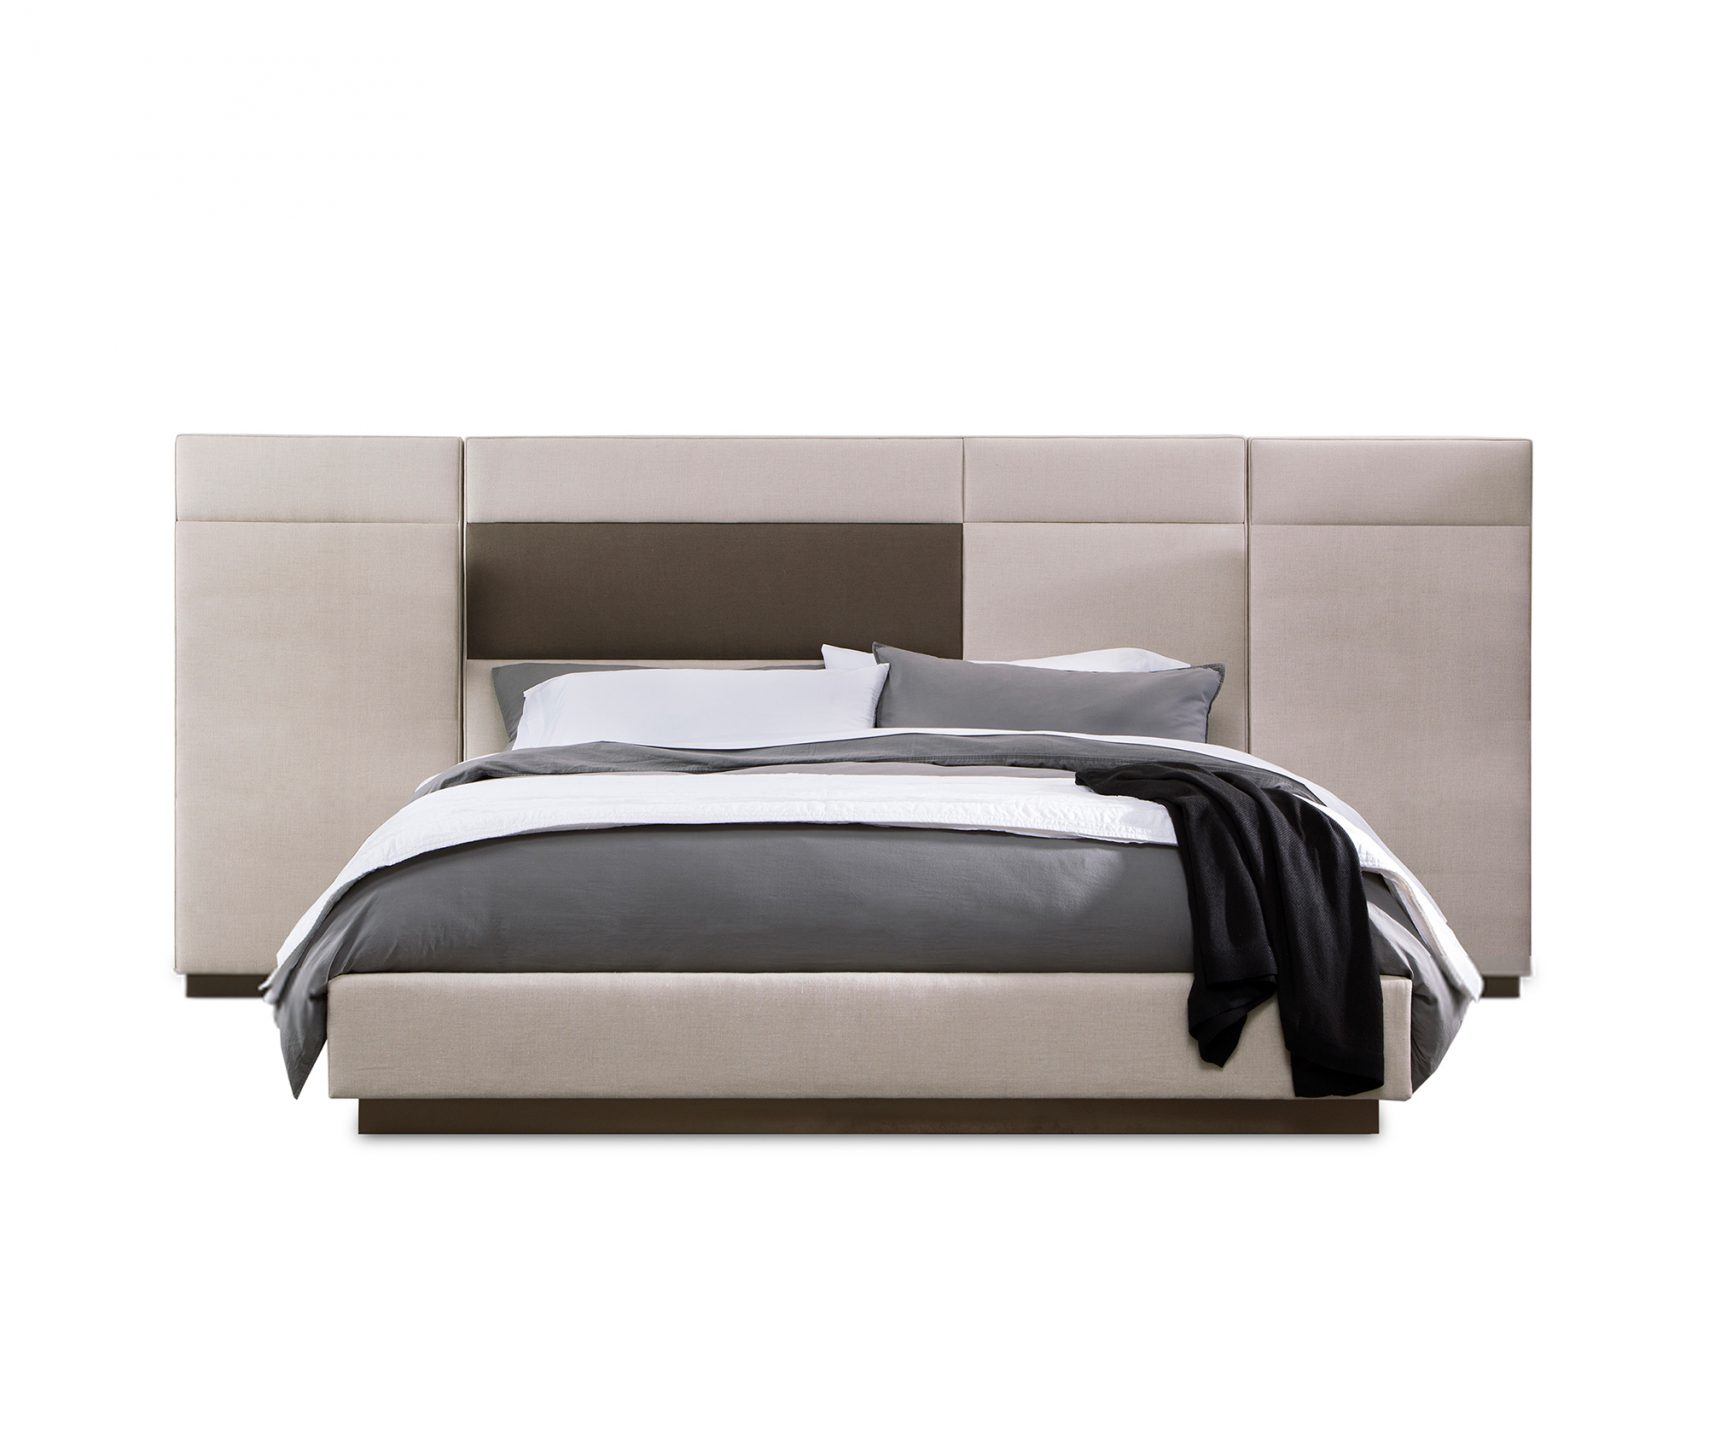 Interlude Home_Quadrant Bed with Side Panels_int_products